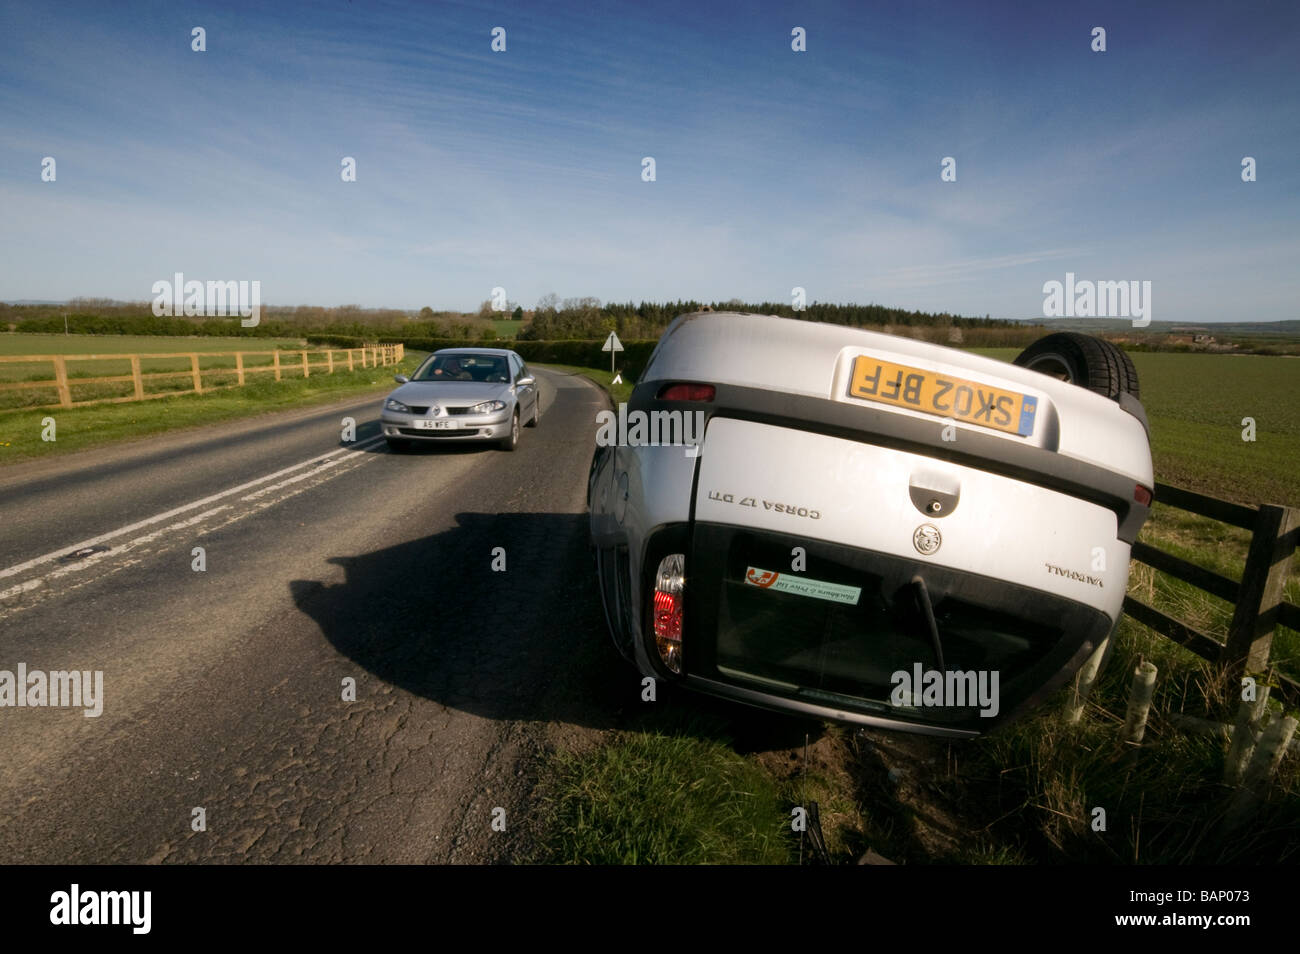 Non fatal car crash on a country road, an underage driver and the car taken without consent. - Stock Image